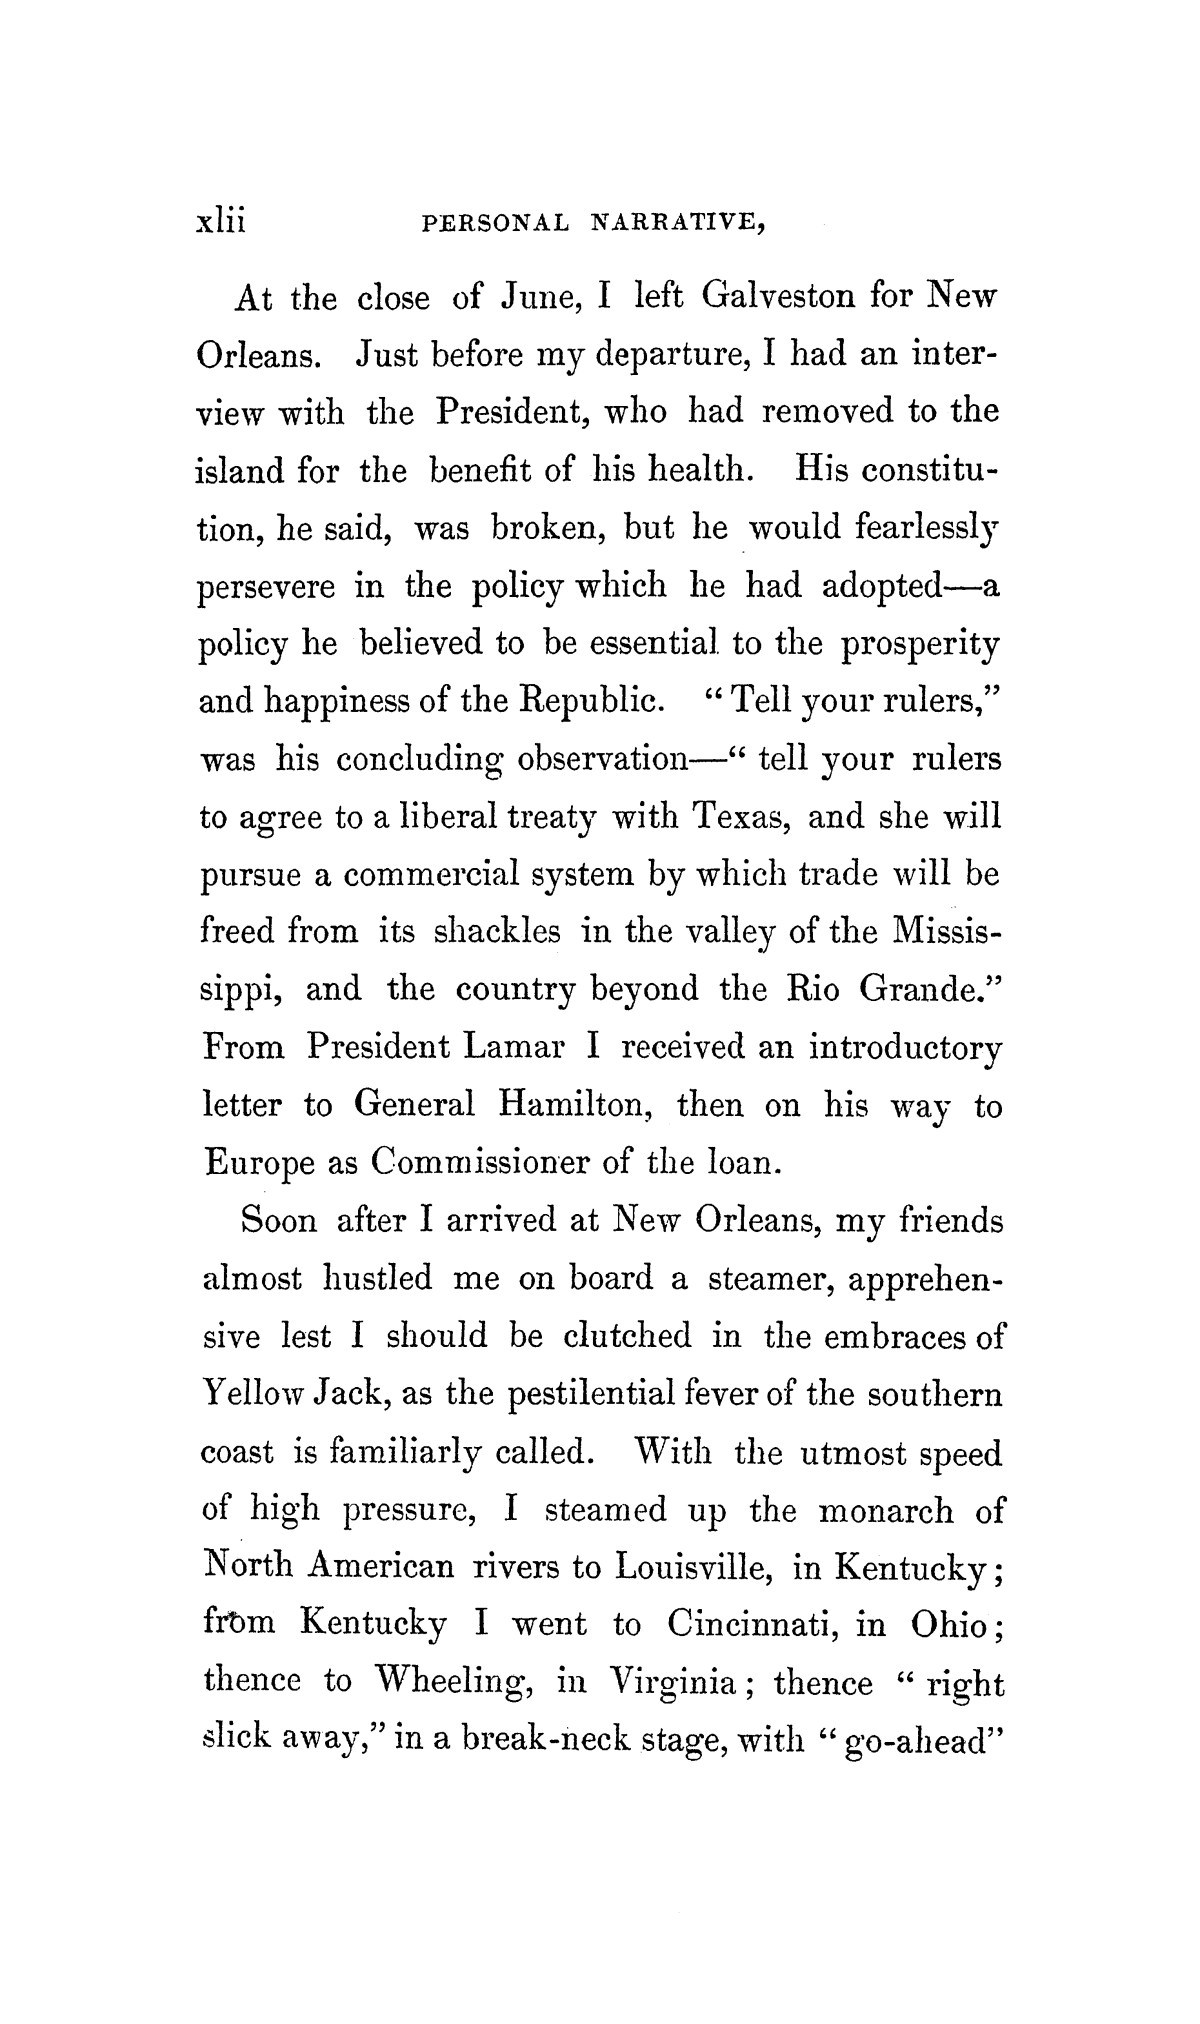 Texas: the rise, progress, and prospects of the Republic of Texas, Vol.1                                                                                                      [Sequence #]: 42 of 432